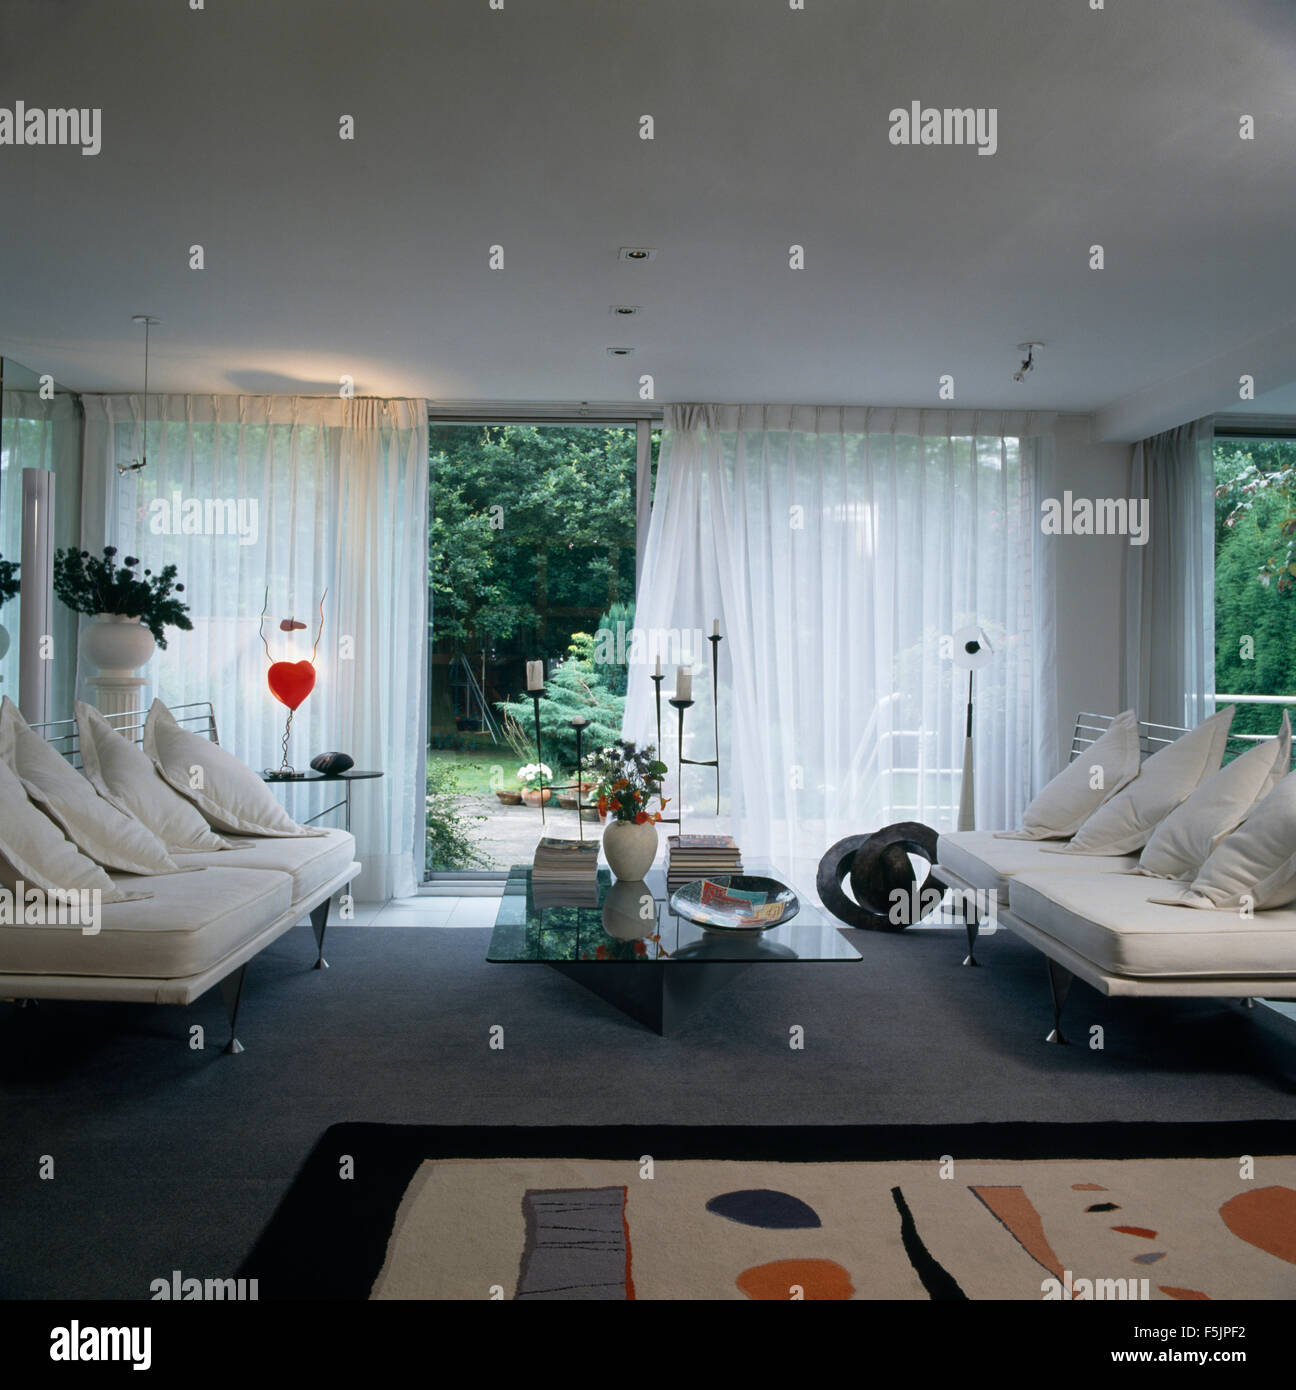 White Sofas In Nineties Living Room With Voile Curtains On